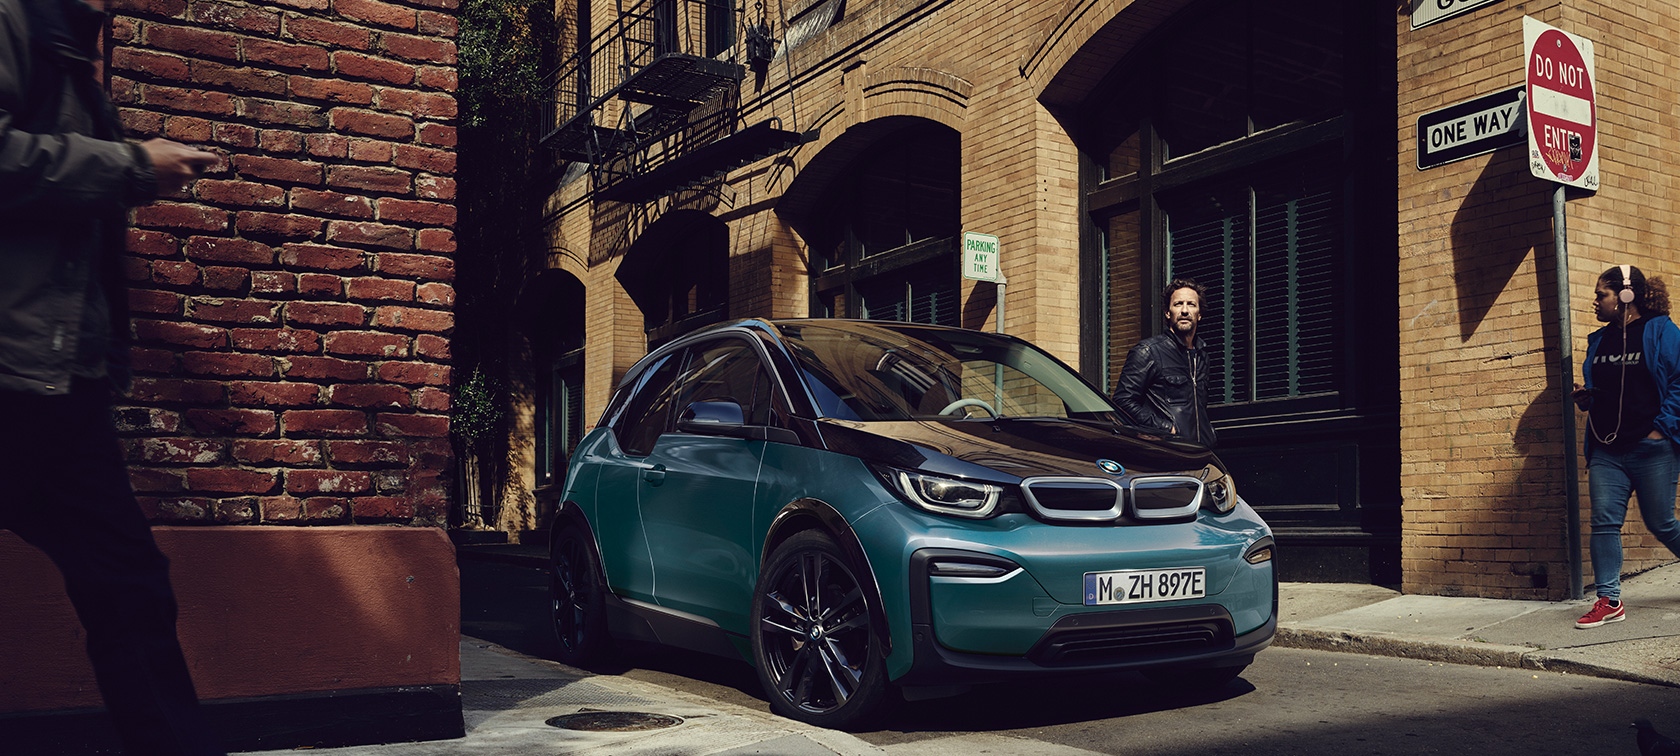 BMW i3 I01 2018 Jucaro beige with Frozen Grey metallic highlight three-quarter front view parking in urban setting